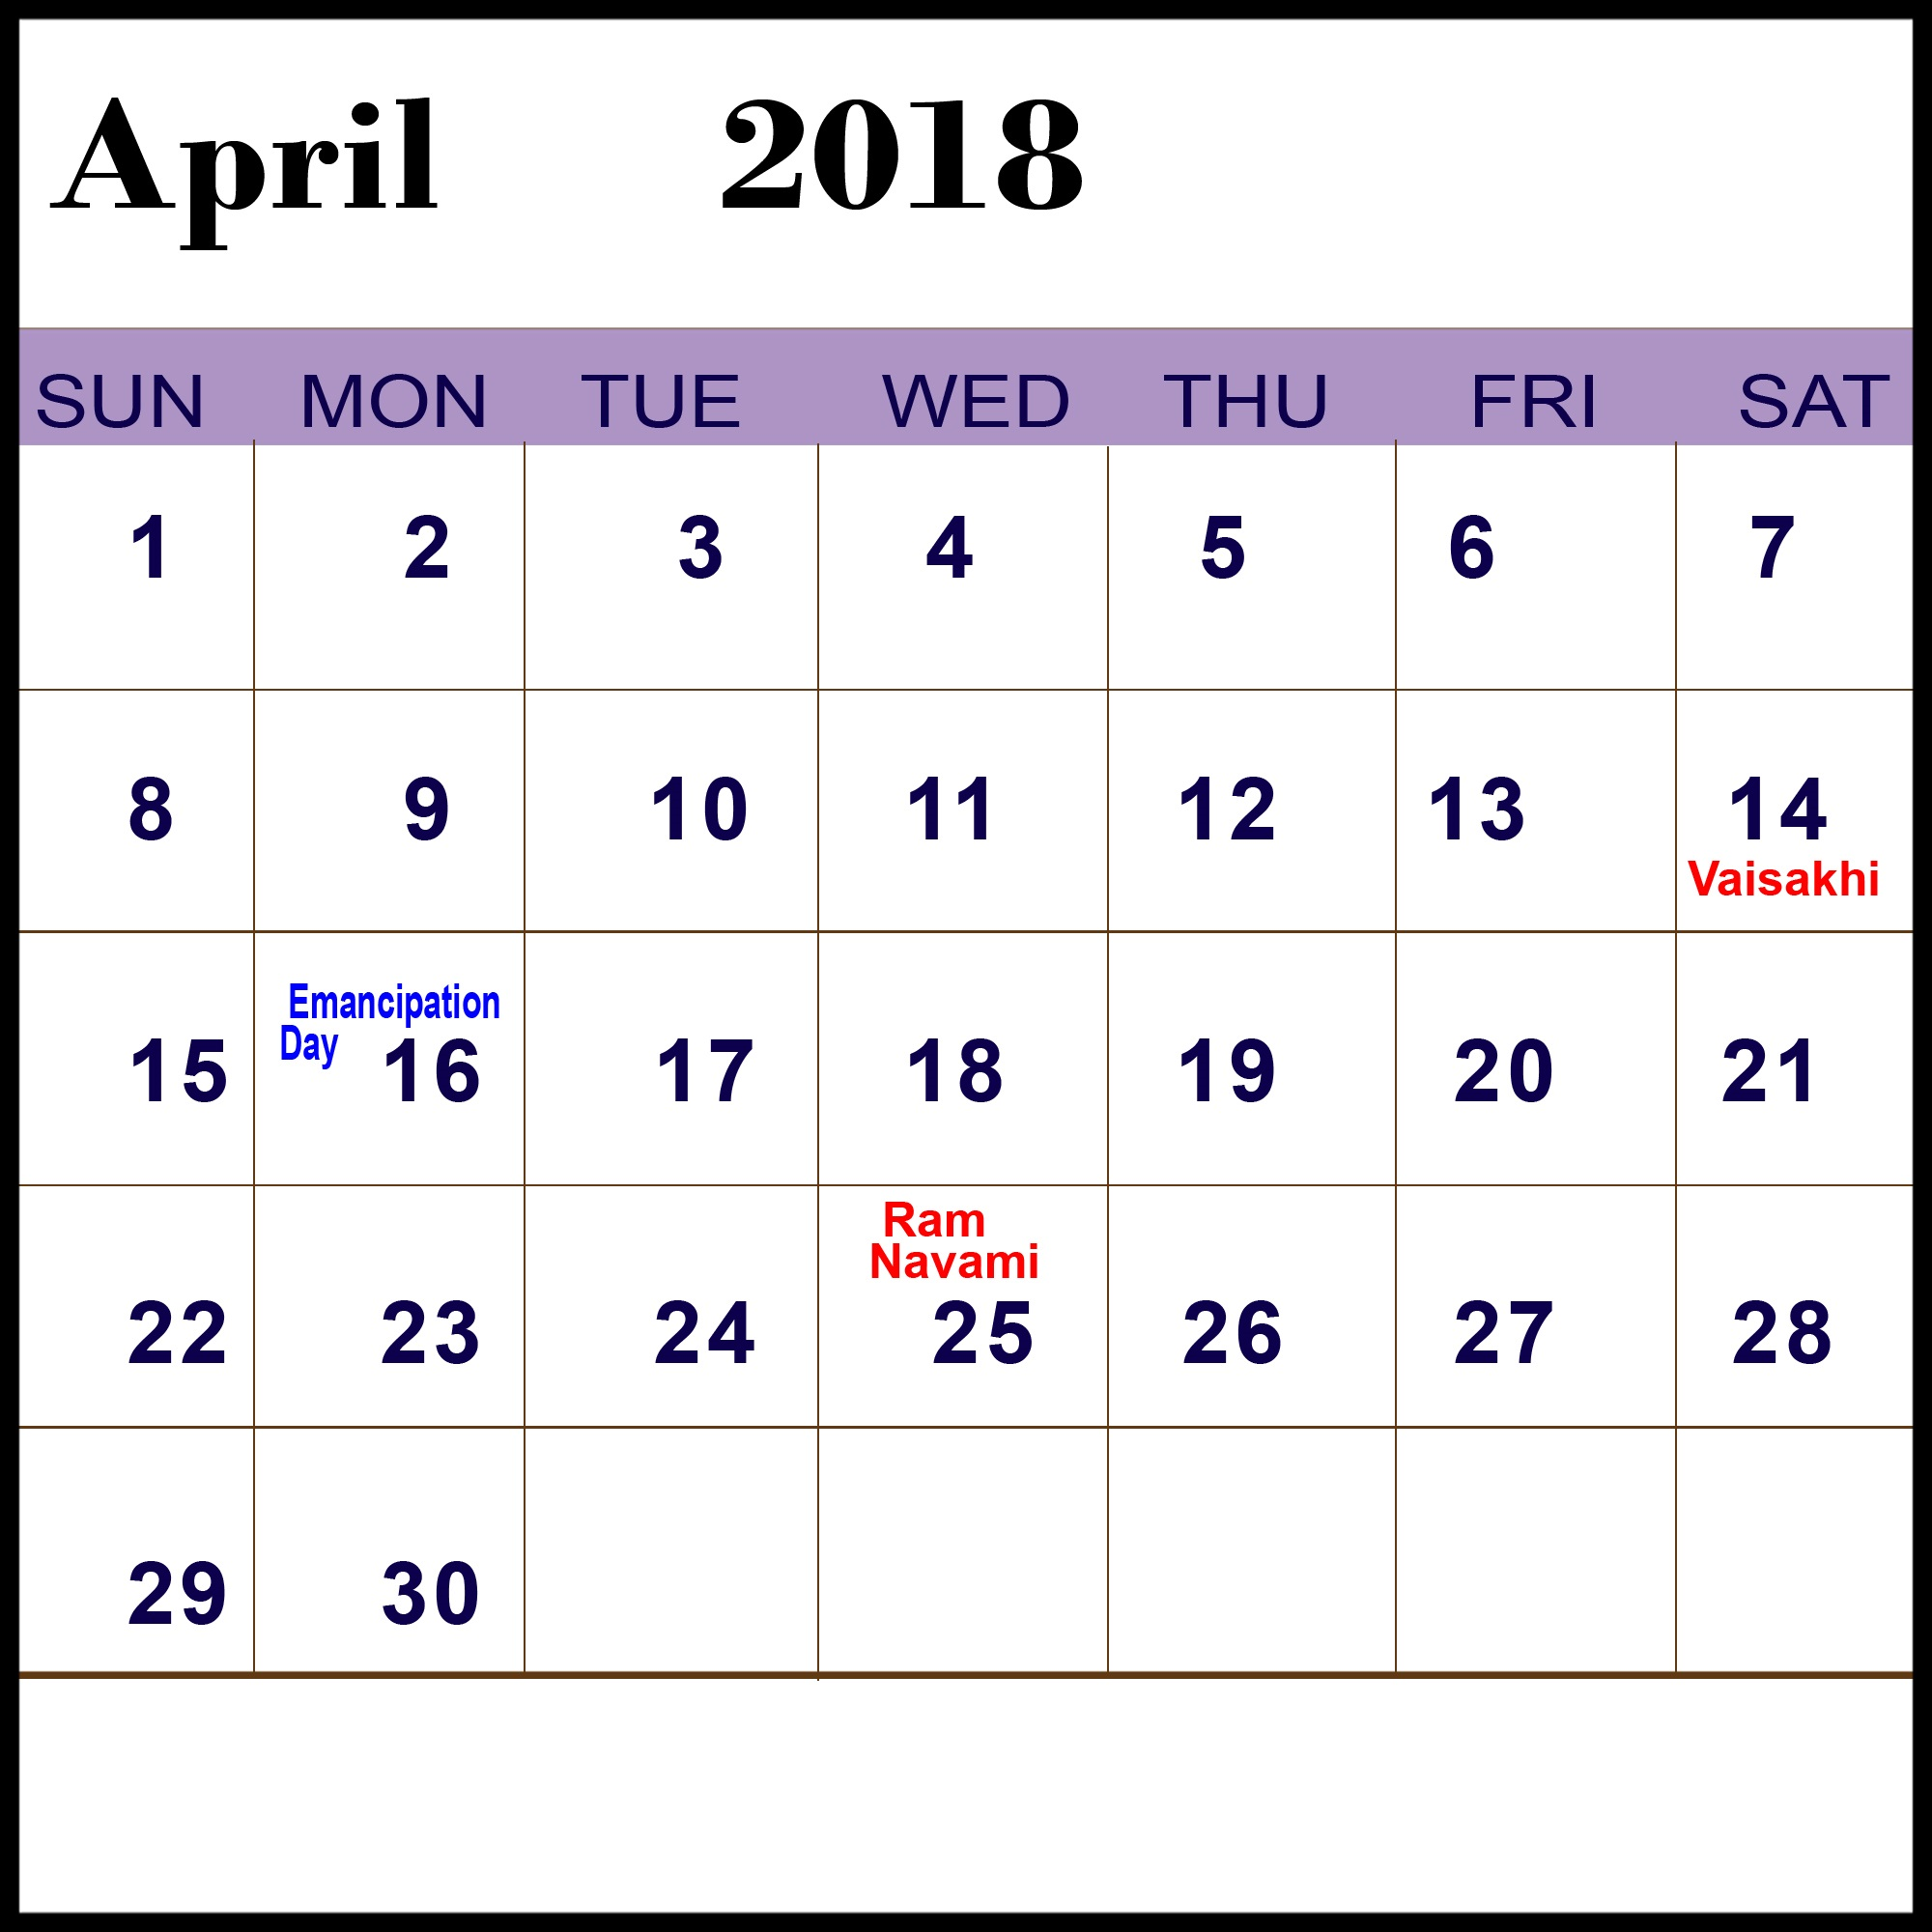 April 2018 Calendar With Holidays Printable Pdf